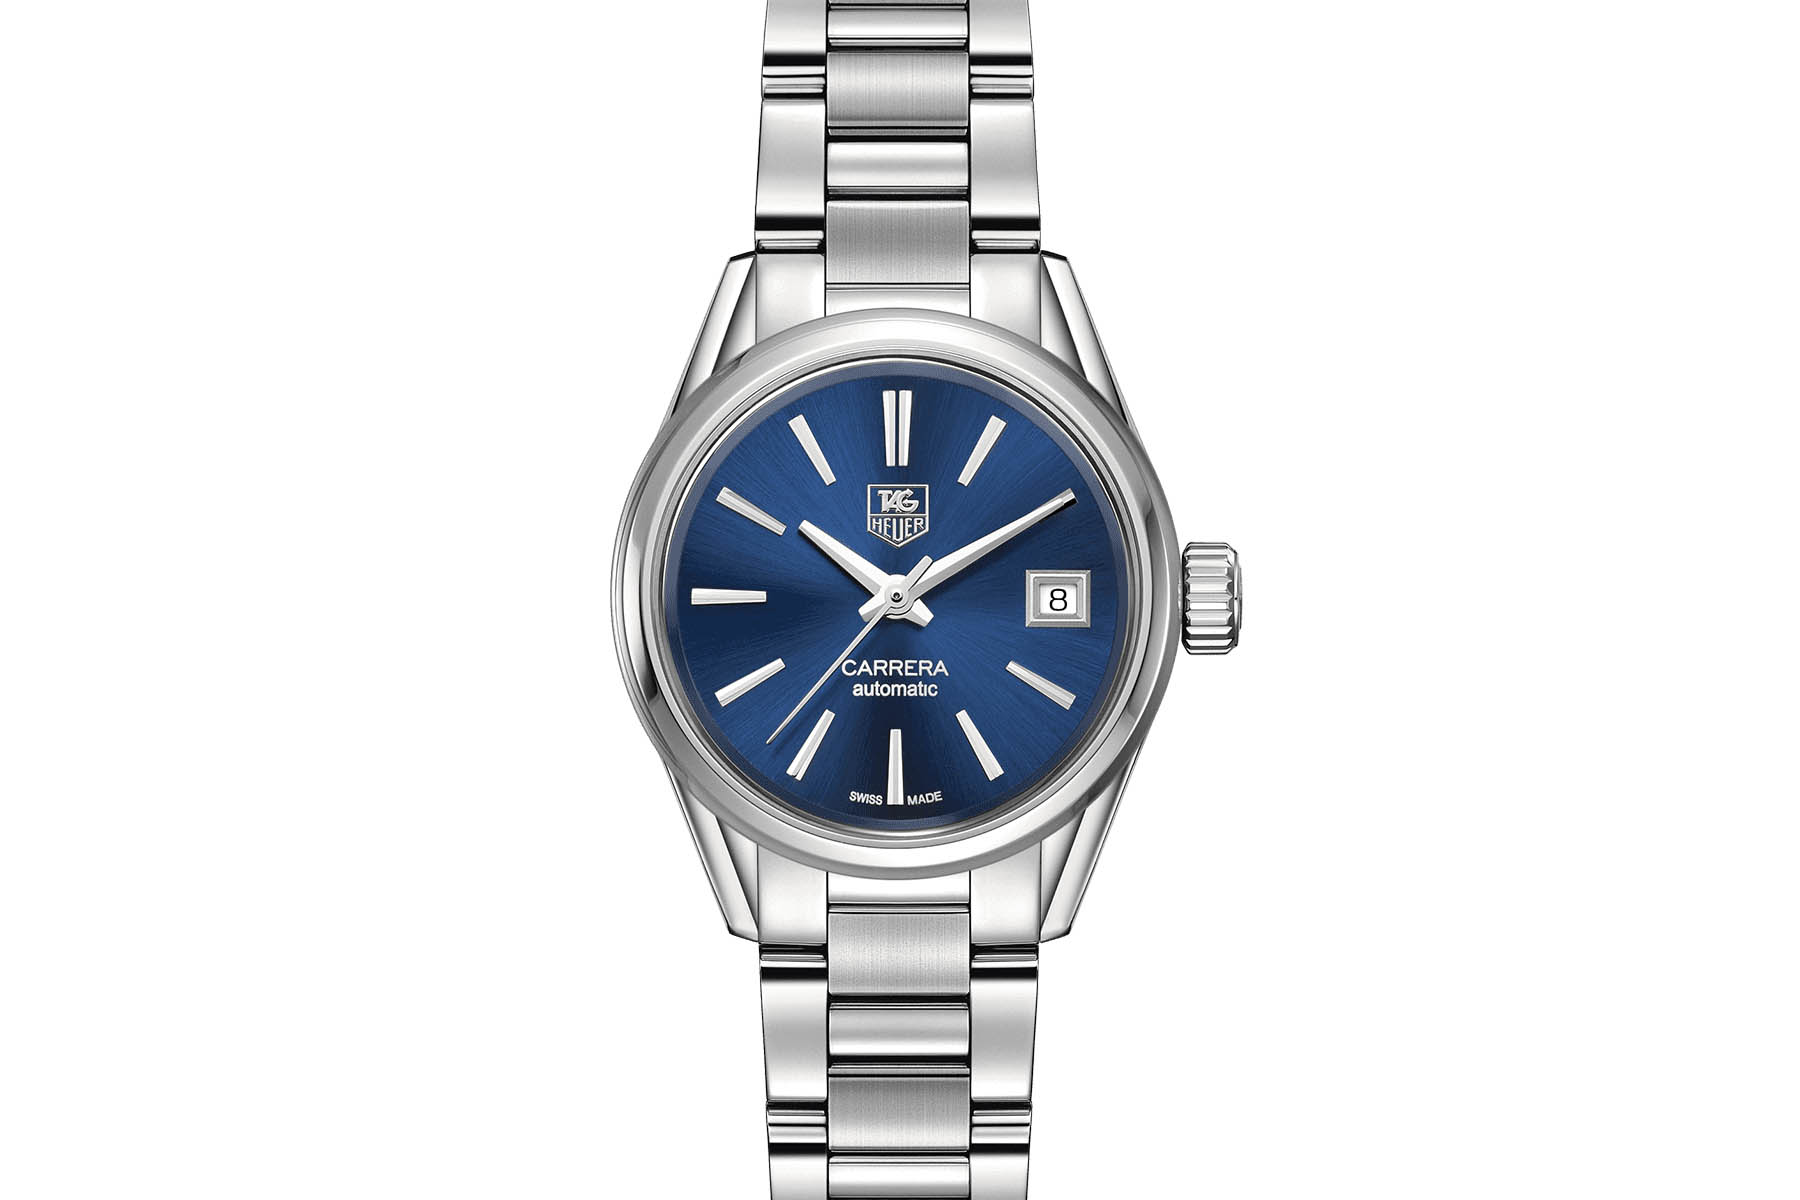 Buying guide women sports watches under 5000 Euros